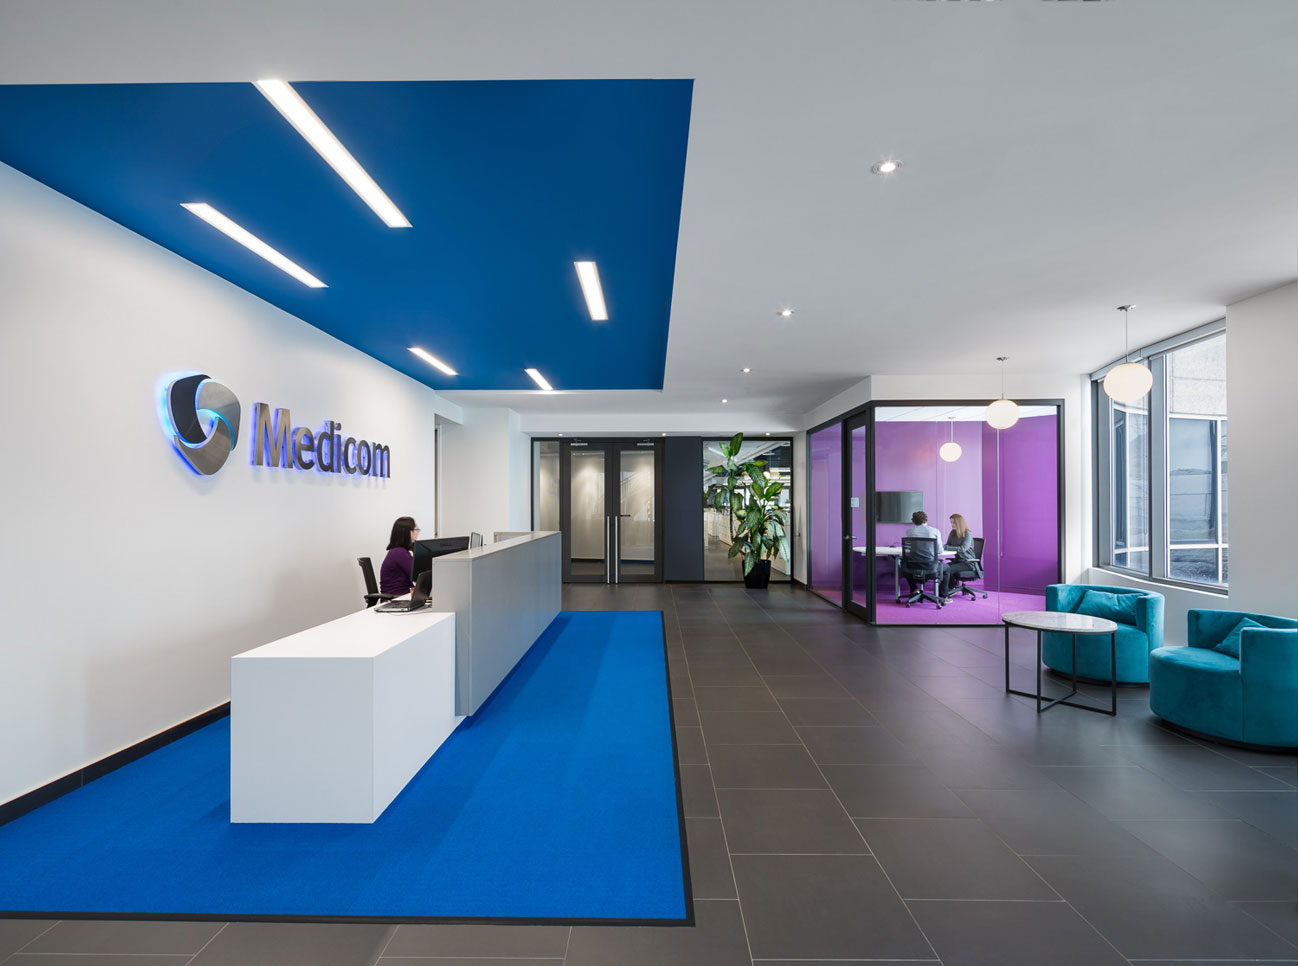 White reception desk on blue carpet with blue recessed ceiling, Medicom logo on wall and glass cube meeting area  finished in purple.